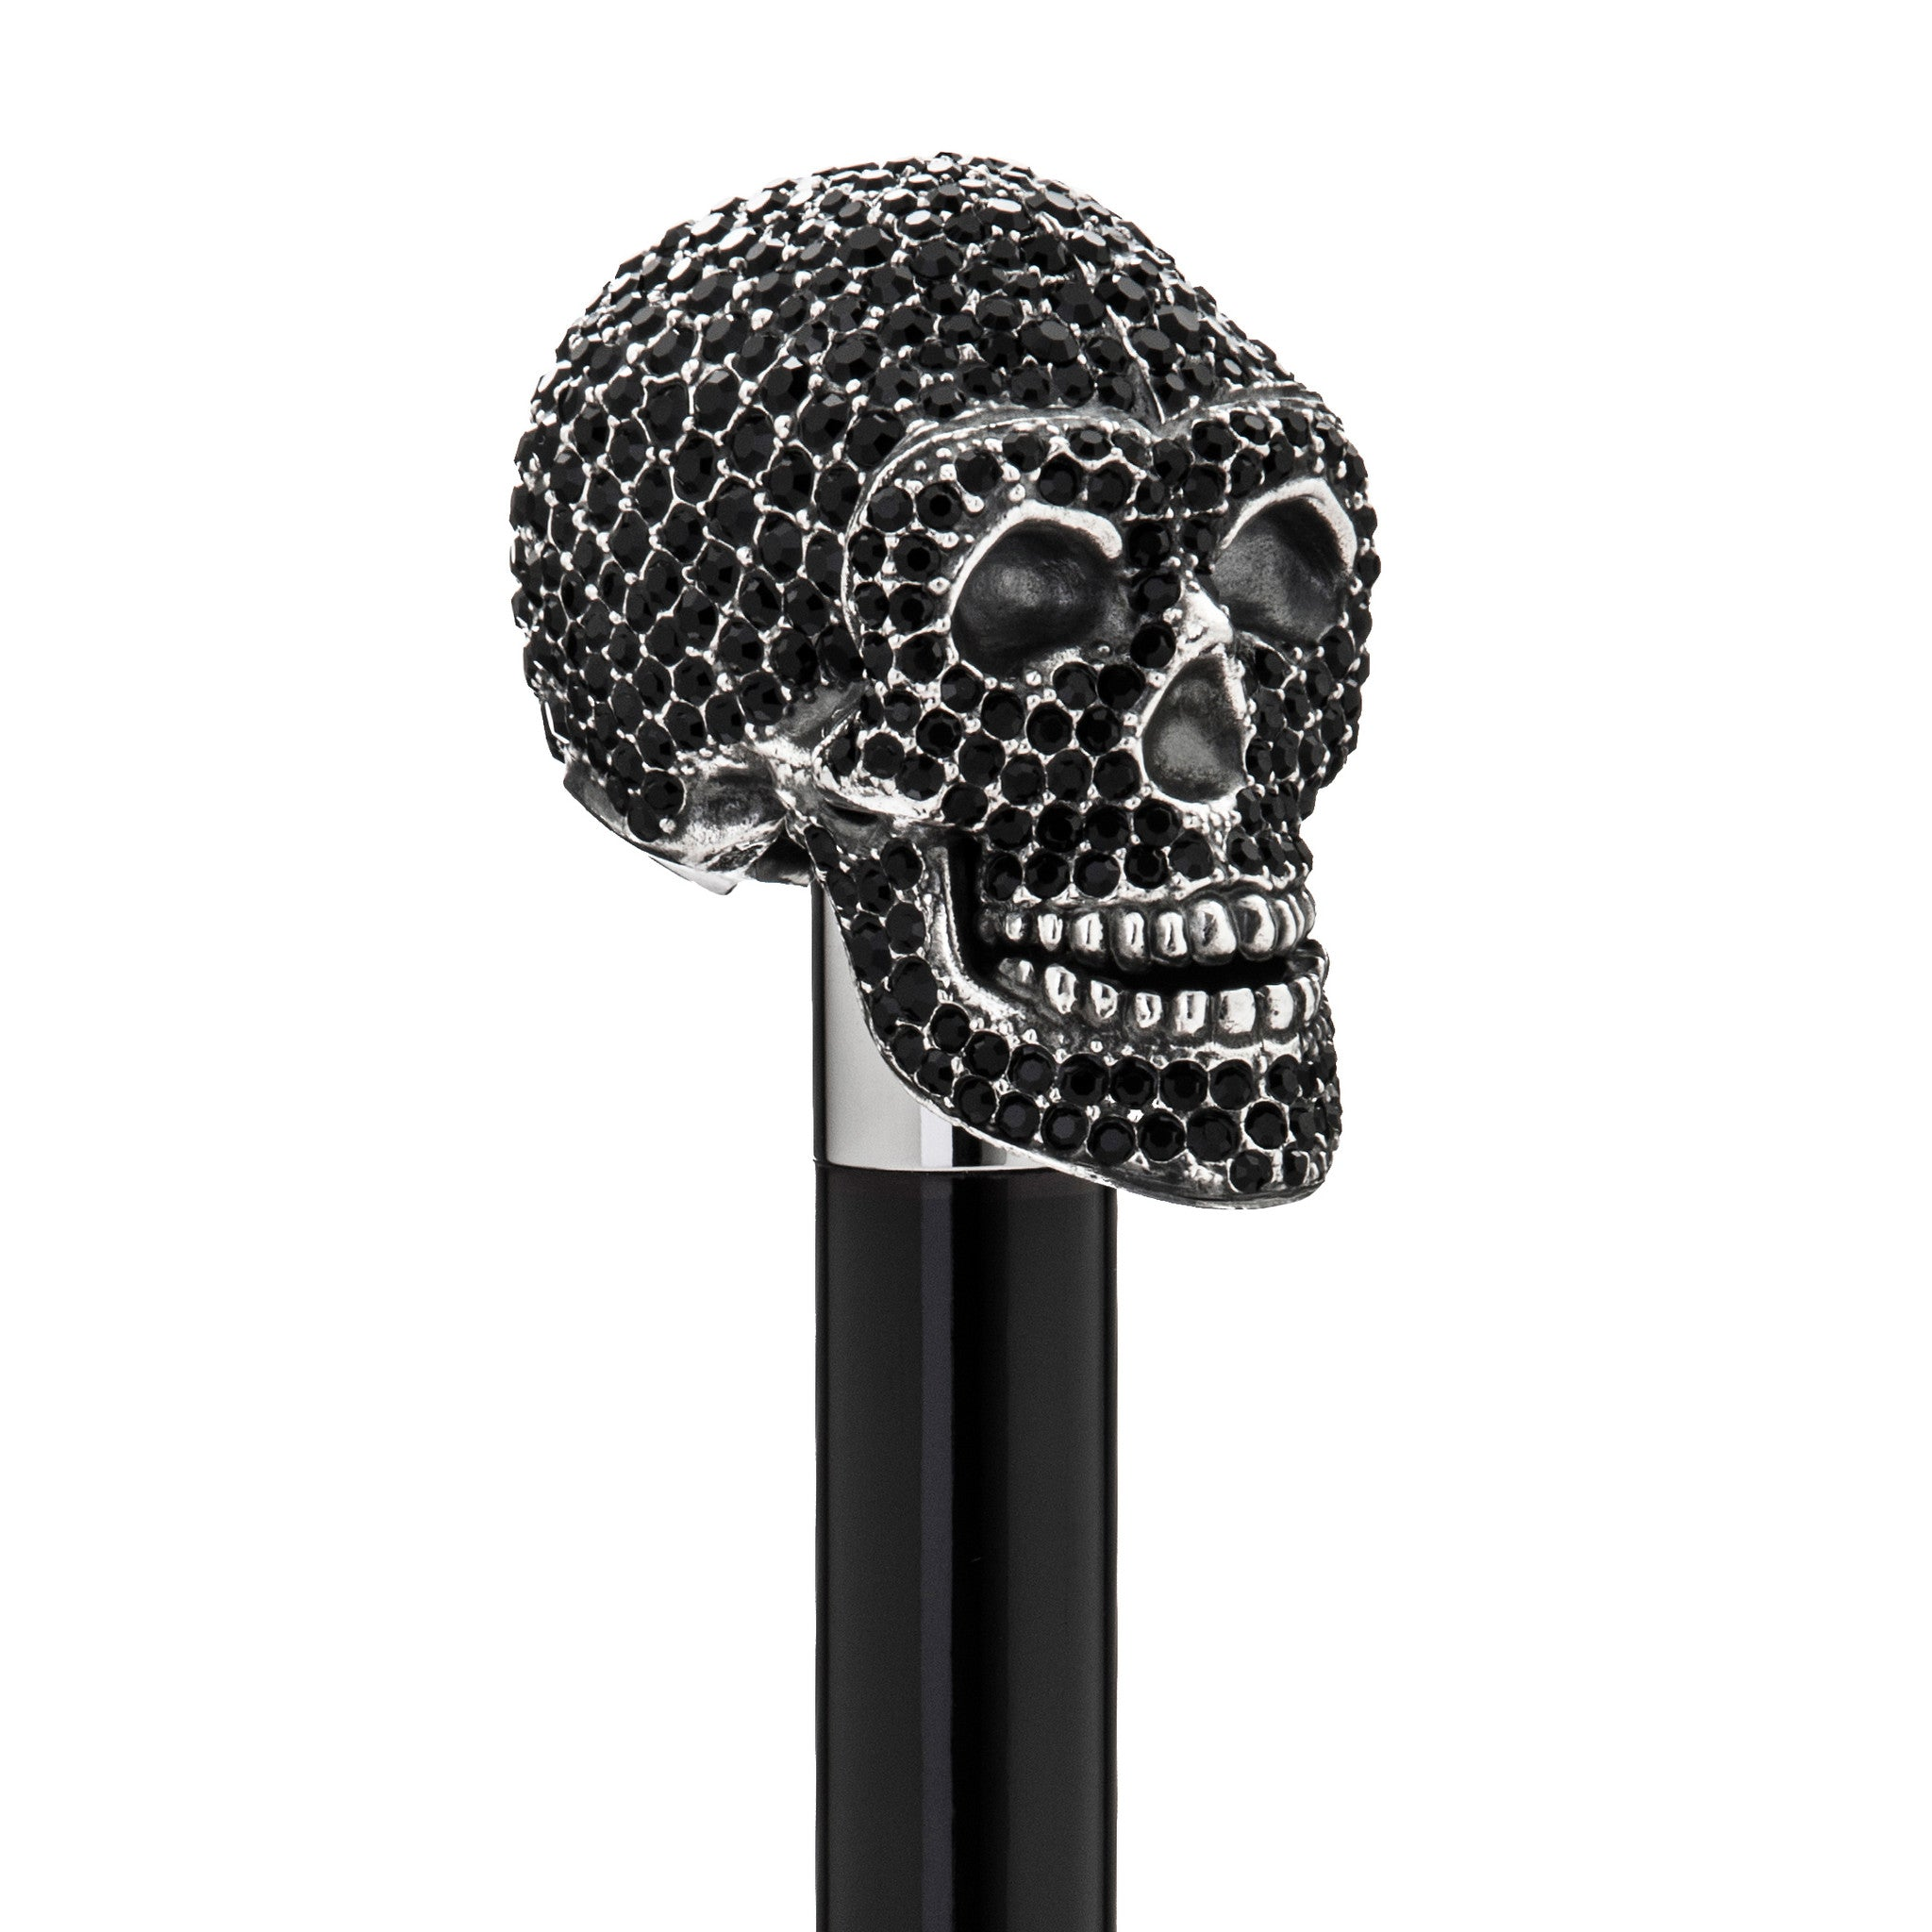 'Damien' Swarovski Skull Umbrella (Black)